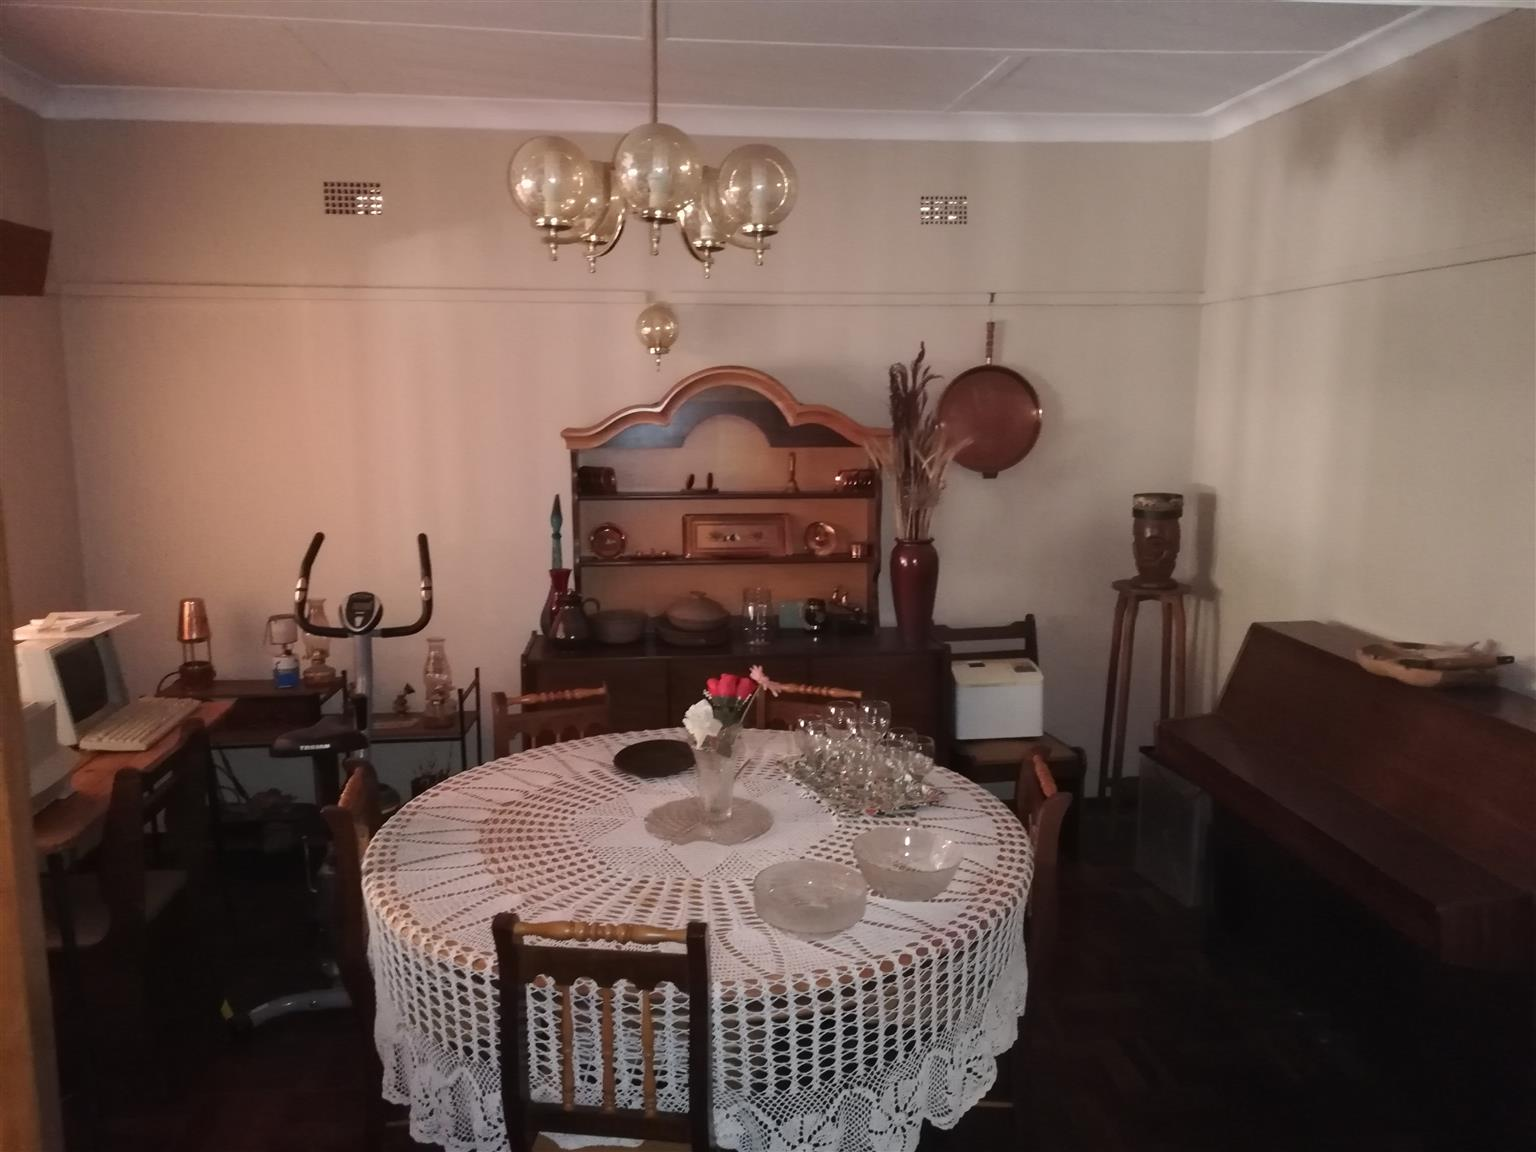 5 Bedroom House with MASSIVE PROPERTY - ALL the extras and below market value!